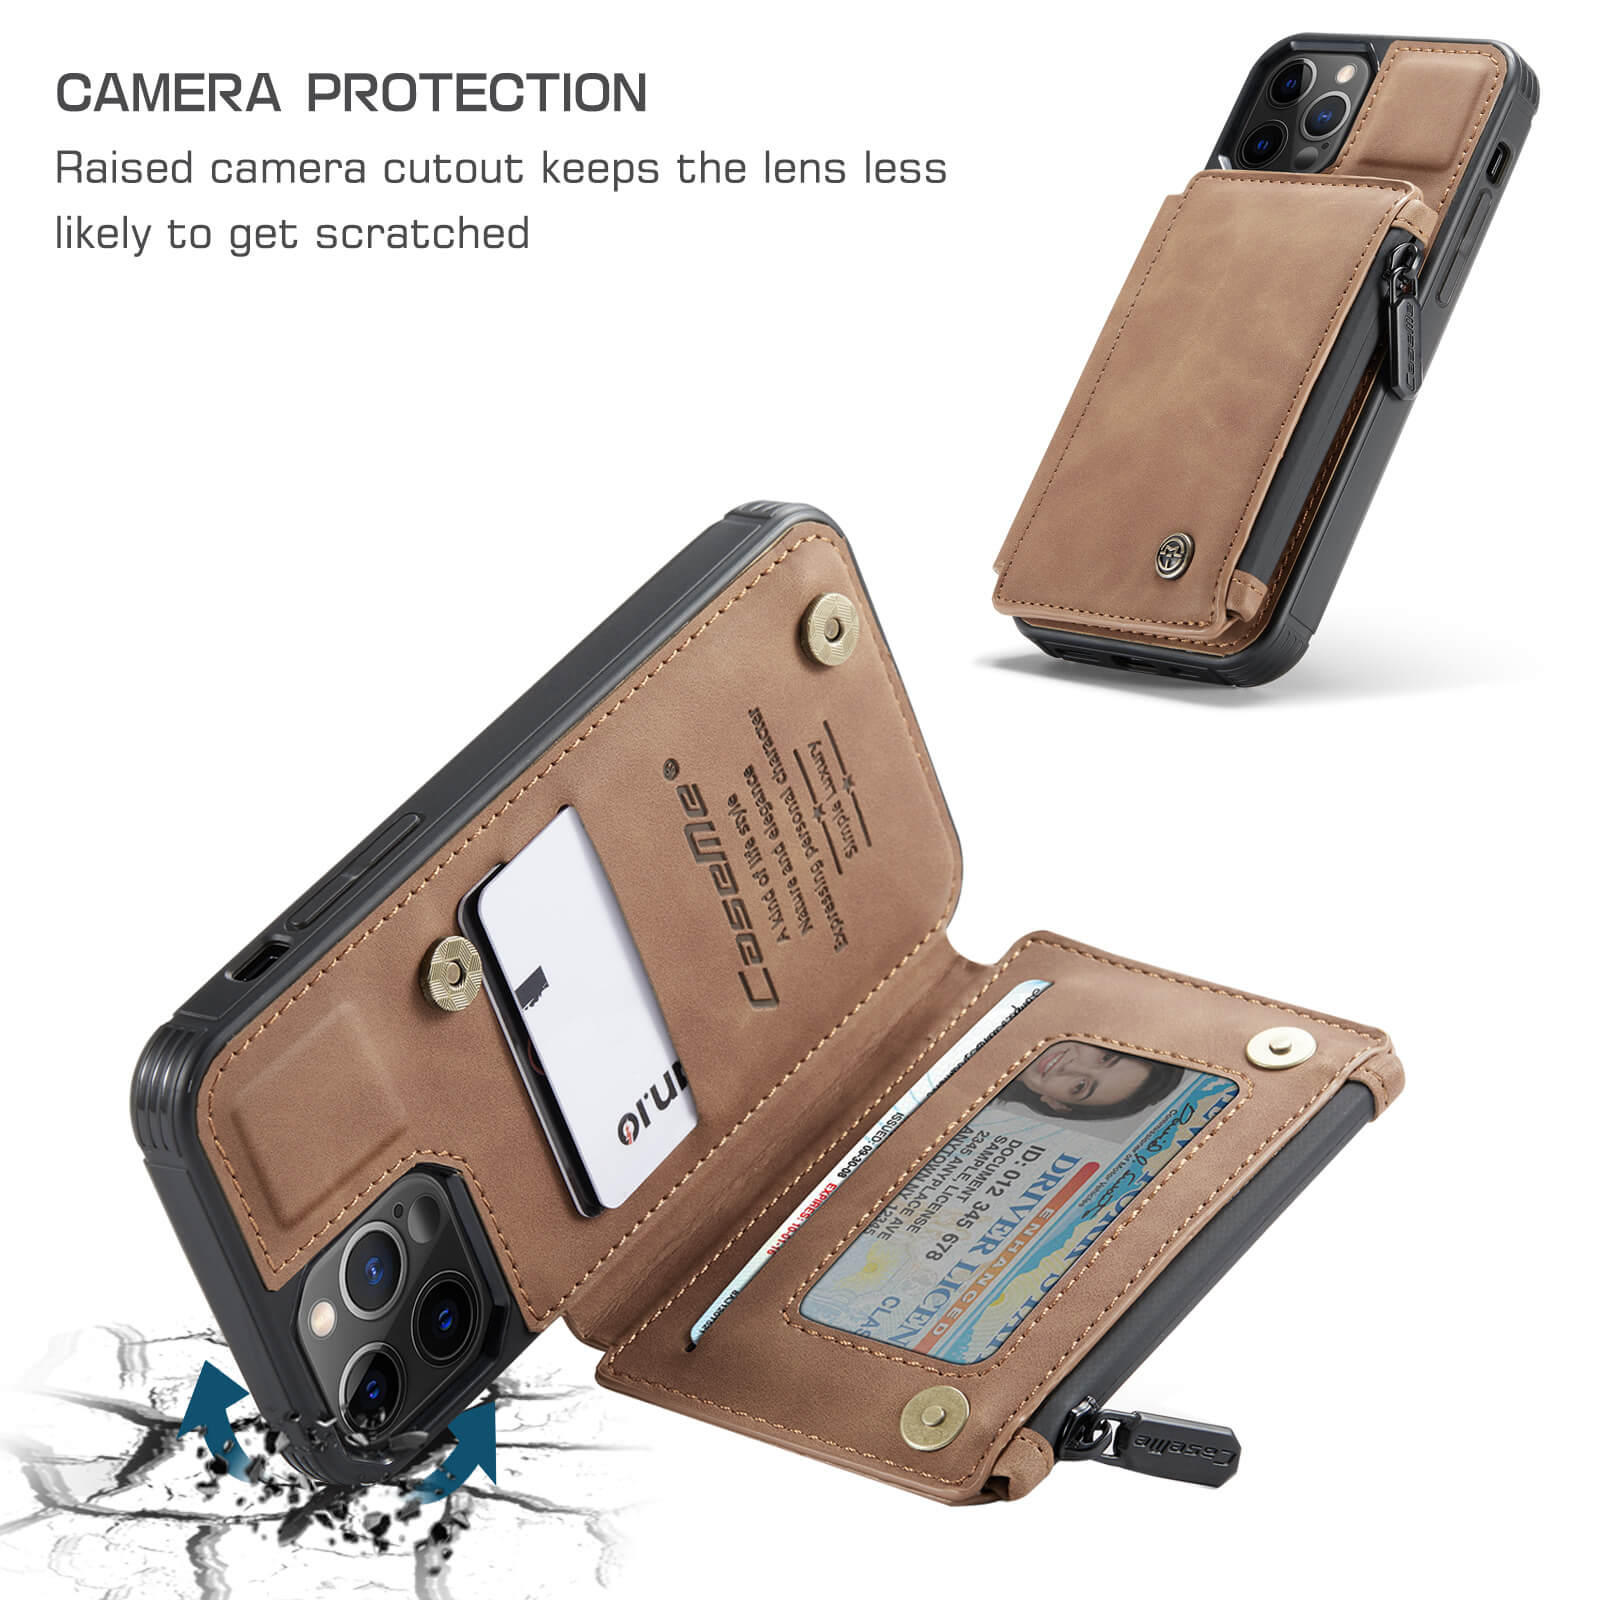 iphone protective leather case with RFID card holder wallet case- product display-camera protected-popmoca